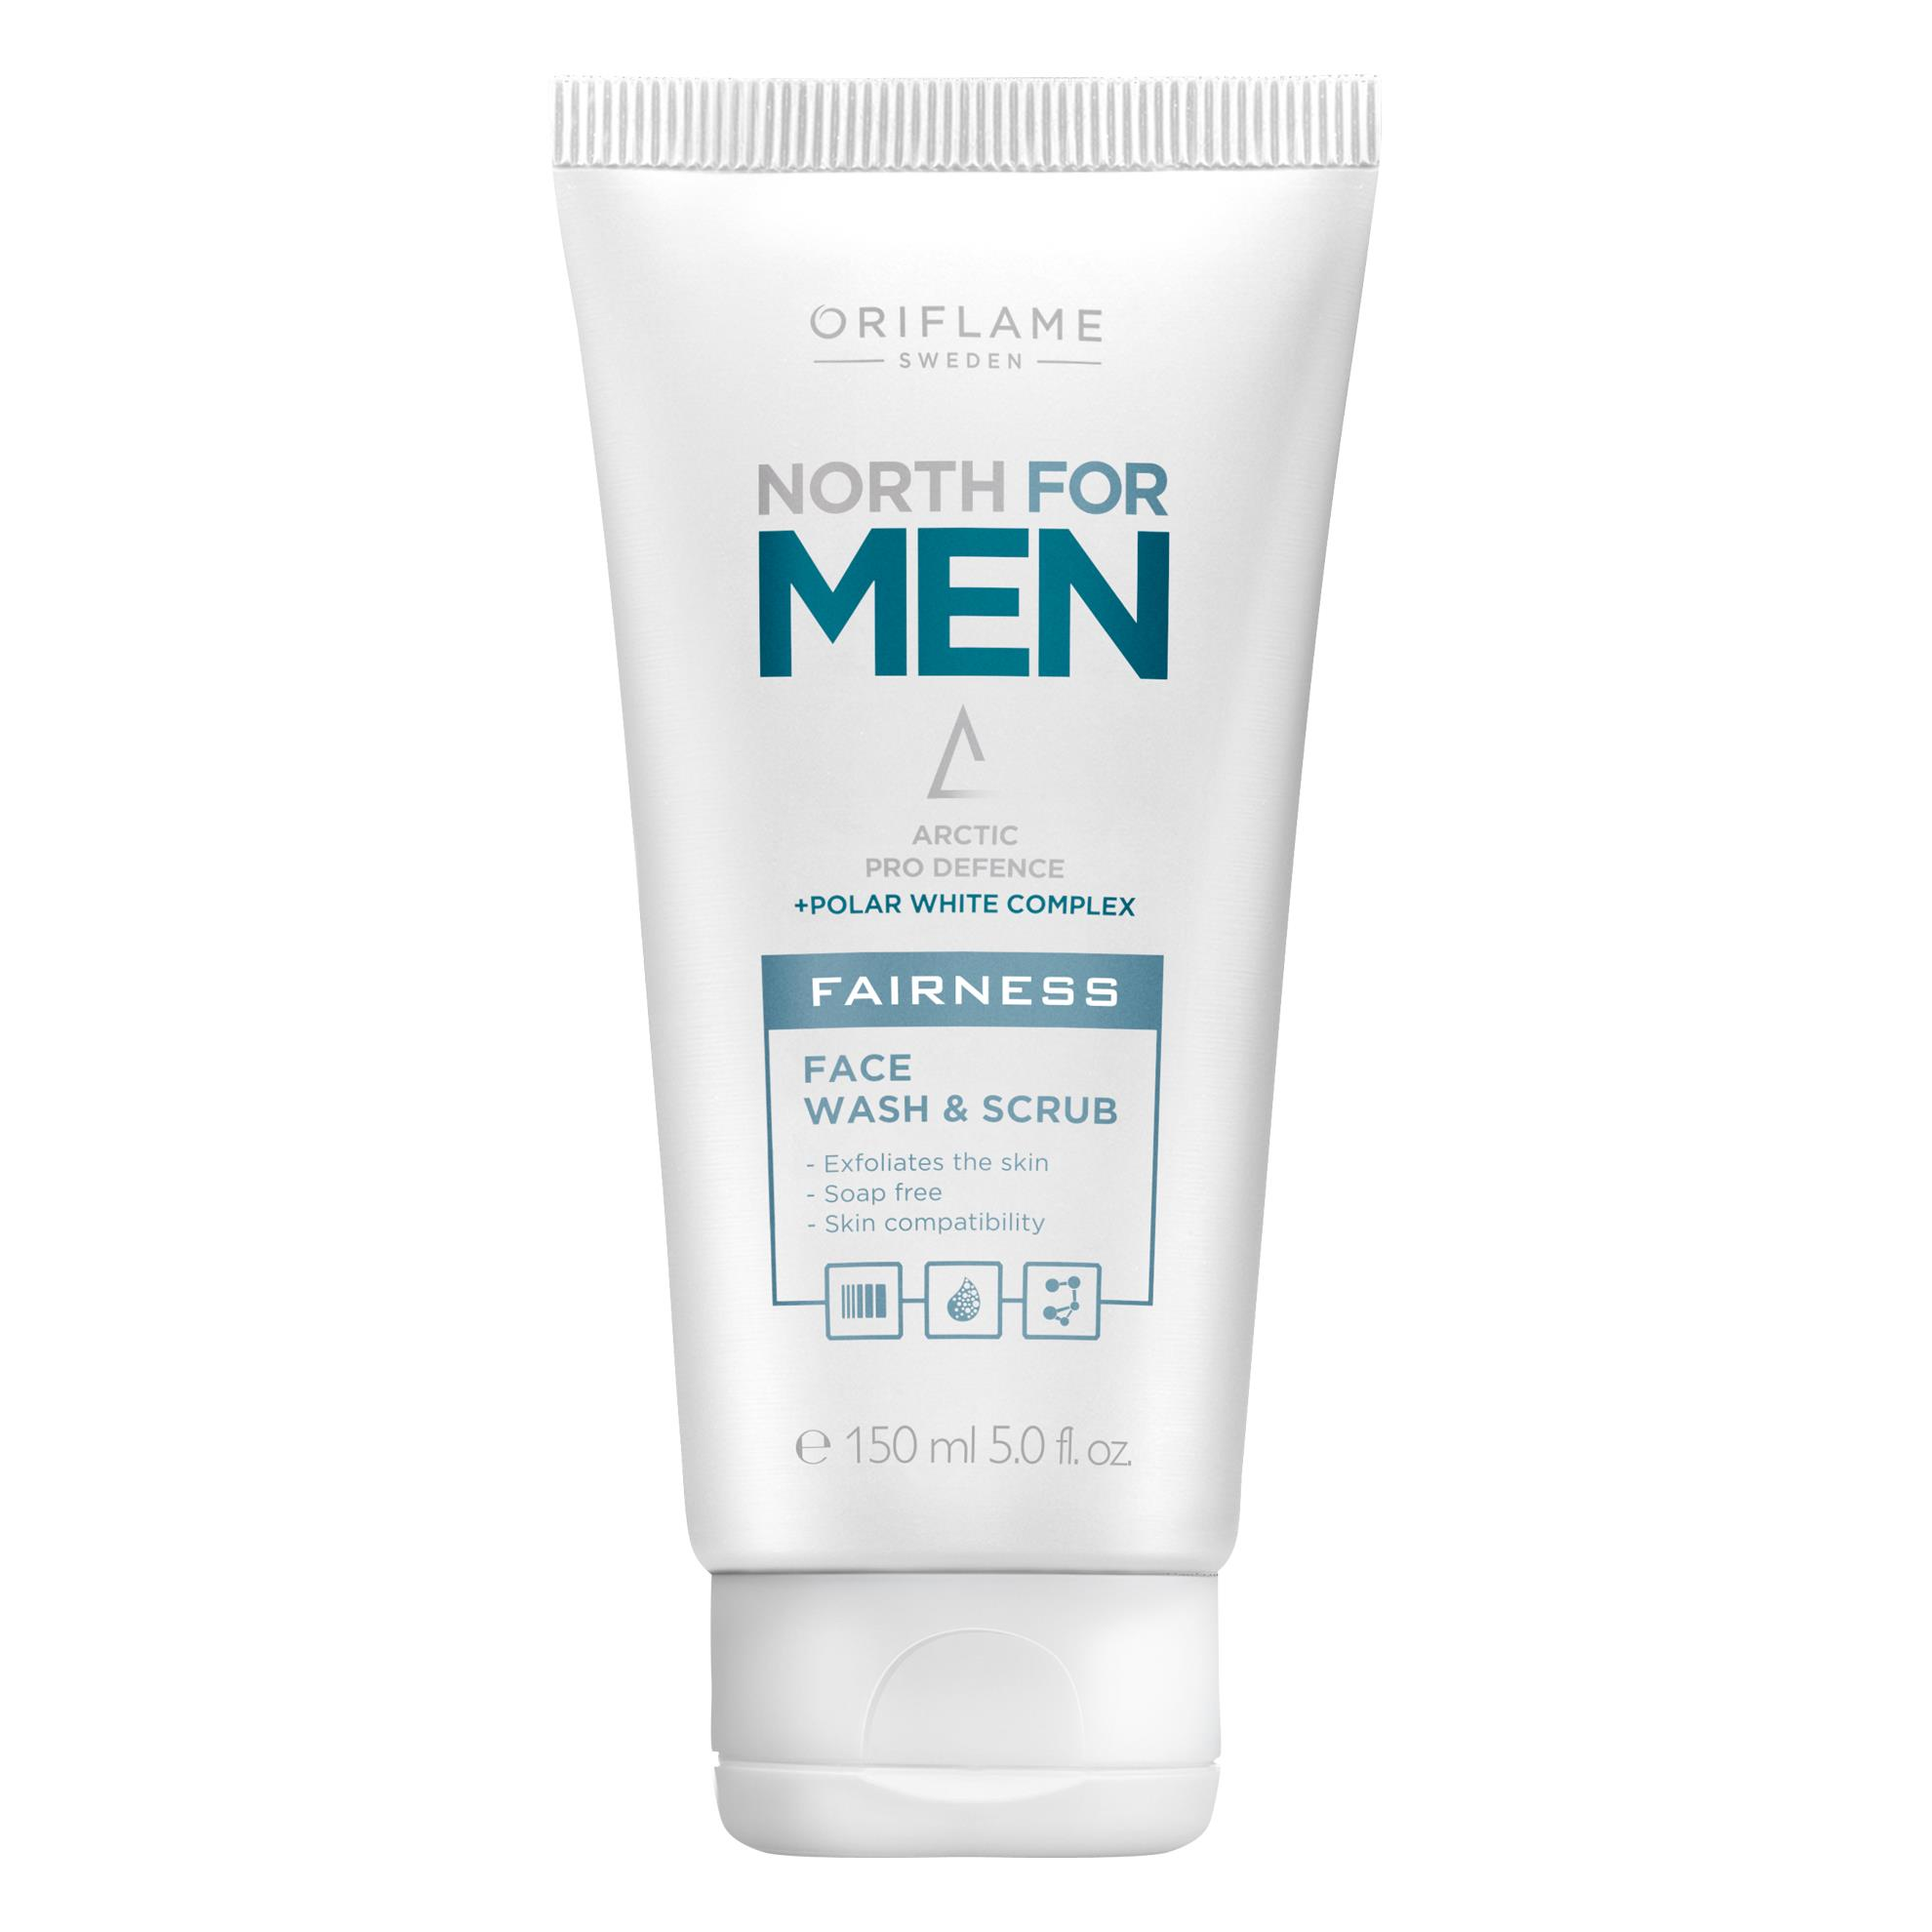 Oriflame Sweden north for men fairness face wash & scrub Face Wash  (150 ml)